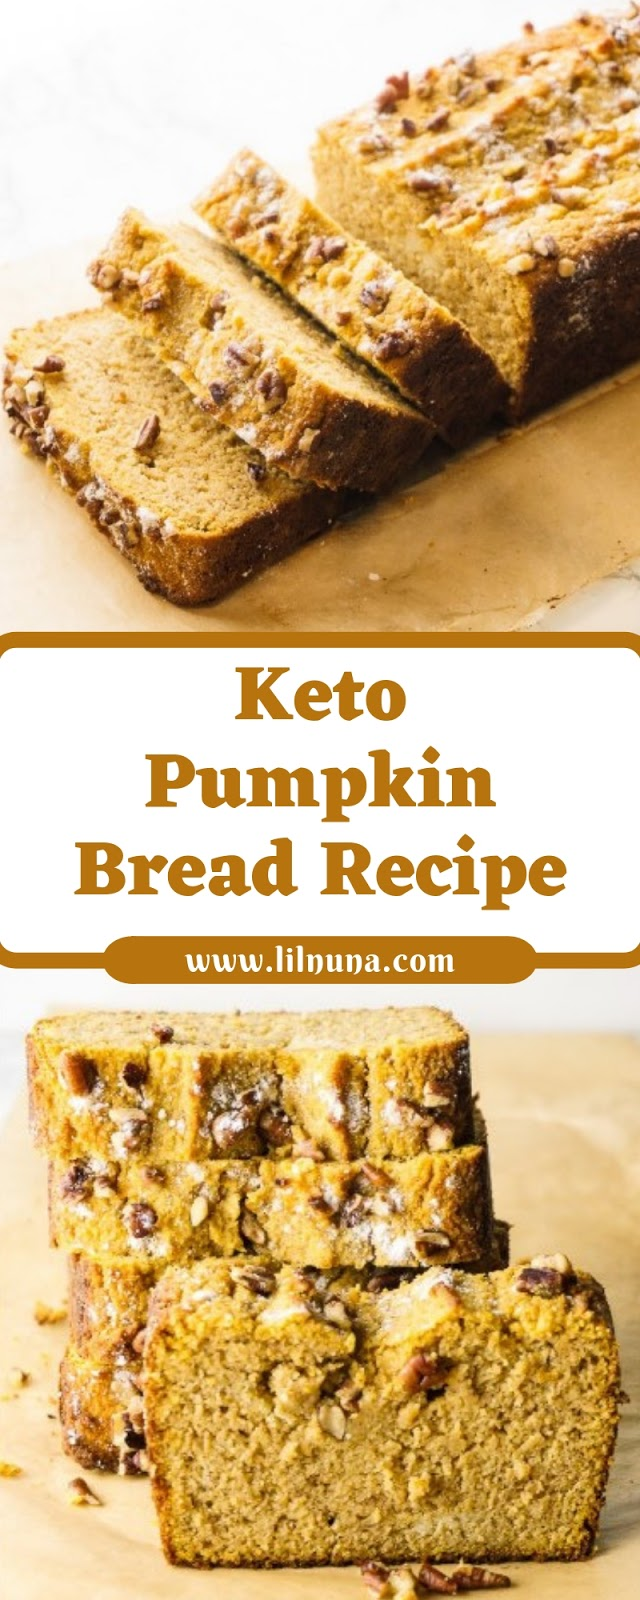 Keto Pumpkin Bread Recipe